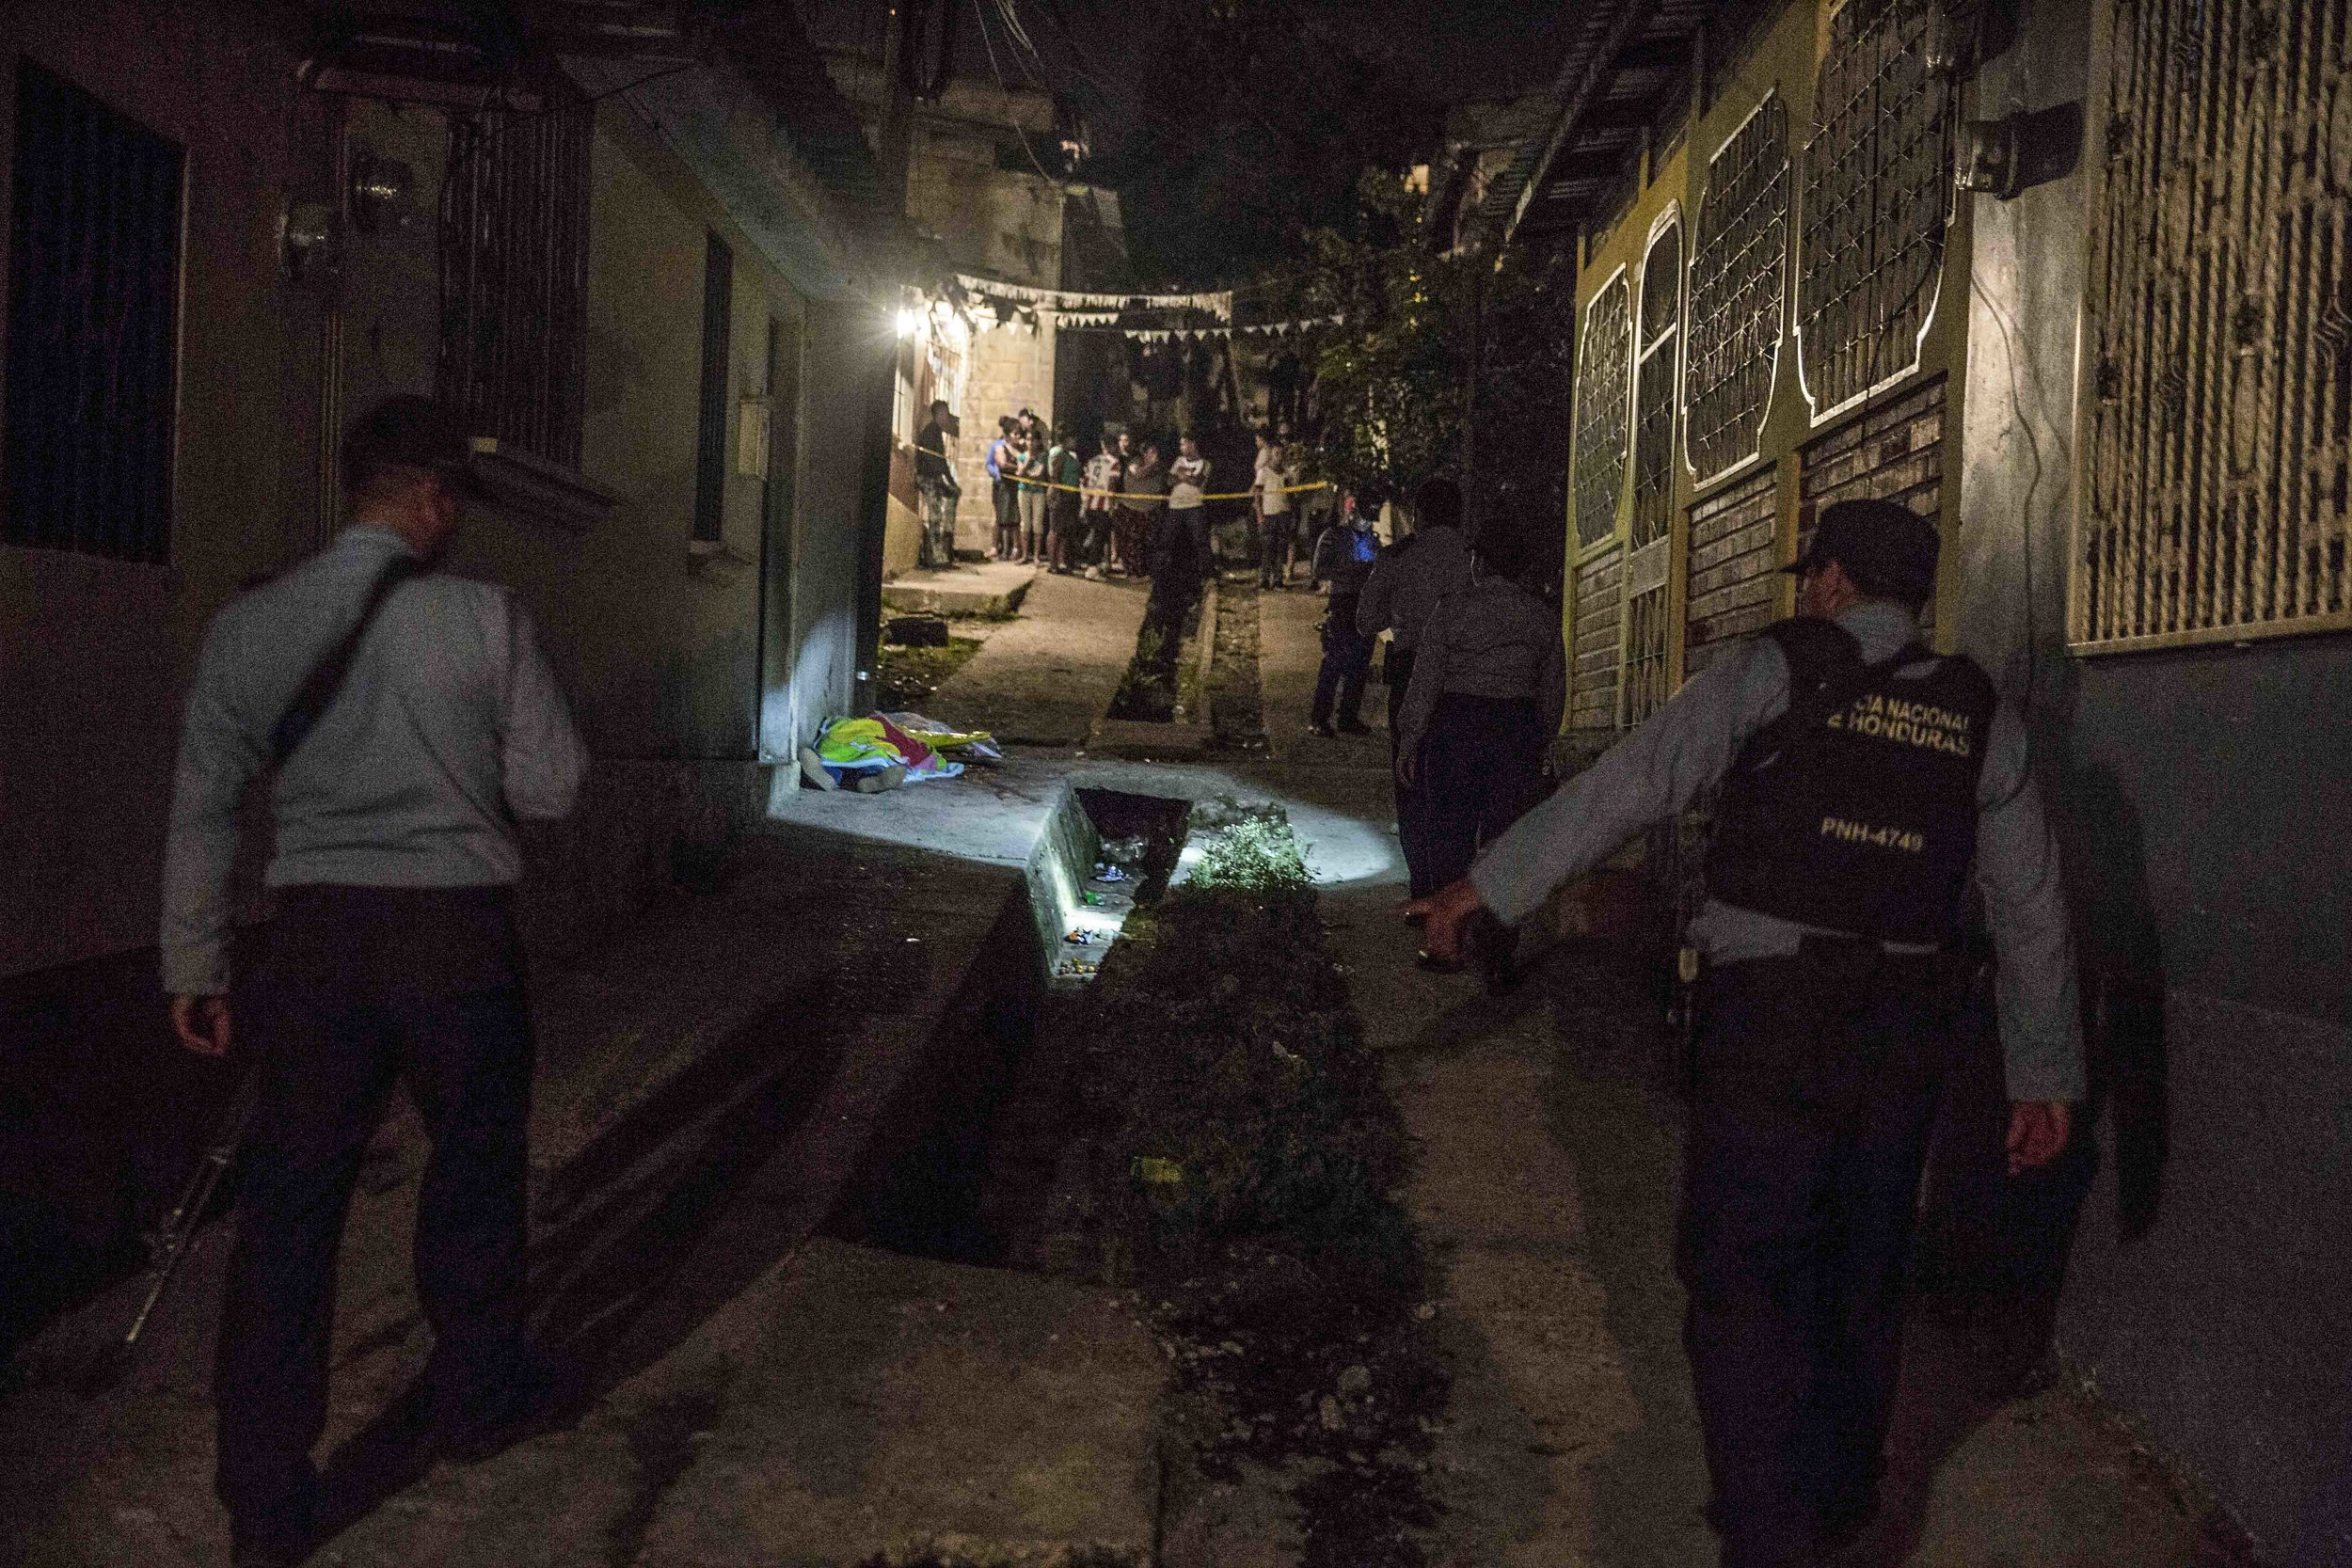 Honduran police officers guard the corpse of a woman, who was killed along with three others and a boy, apparently as a result of drug-related issues, in one of the districts of the capital Tegucigalpa.